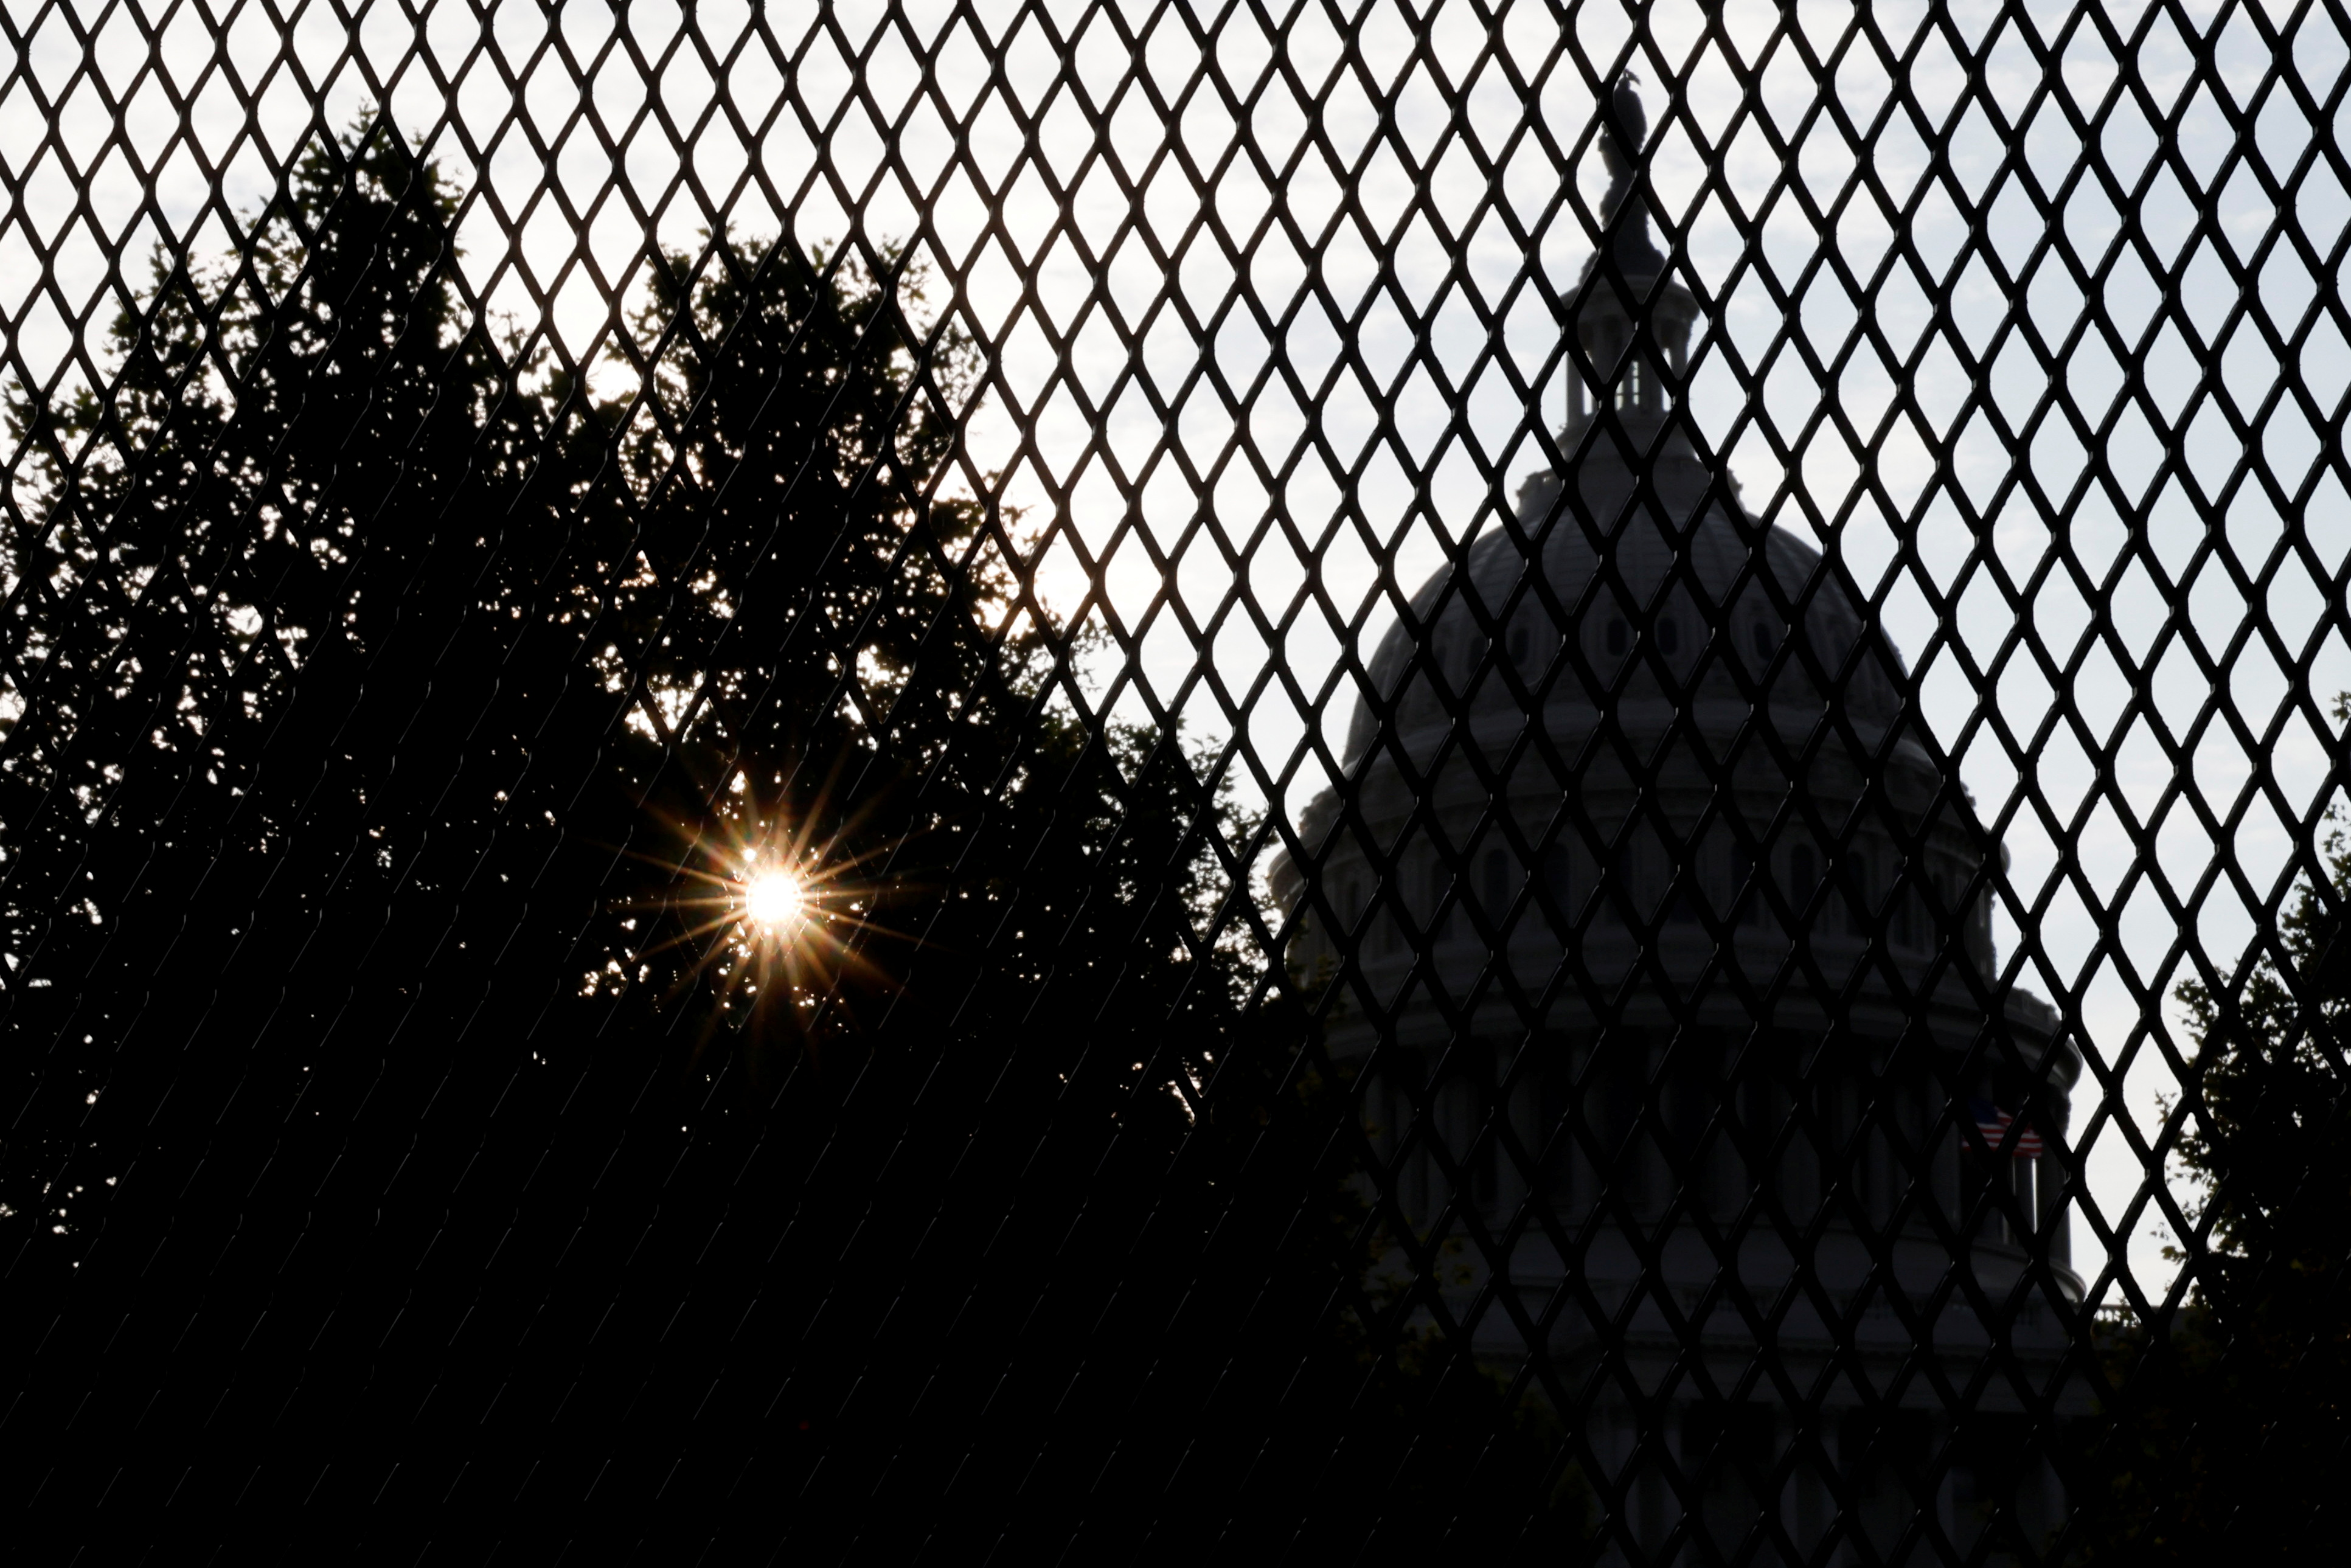 The sun rises behind the U.S. Capitol, surrounded by a security fence ahead of an expected rally Saturday in support of the Jan. 6 defendants in Washington, U.S. September 16, 2021.  REUTERS/Jonathan Ernst